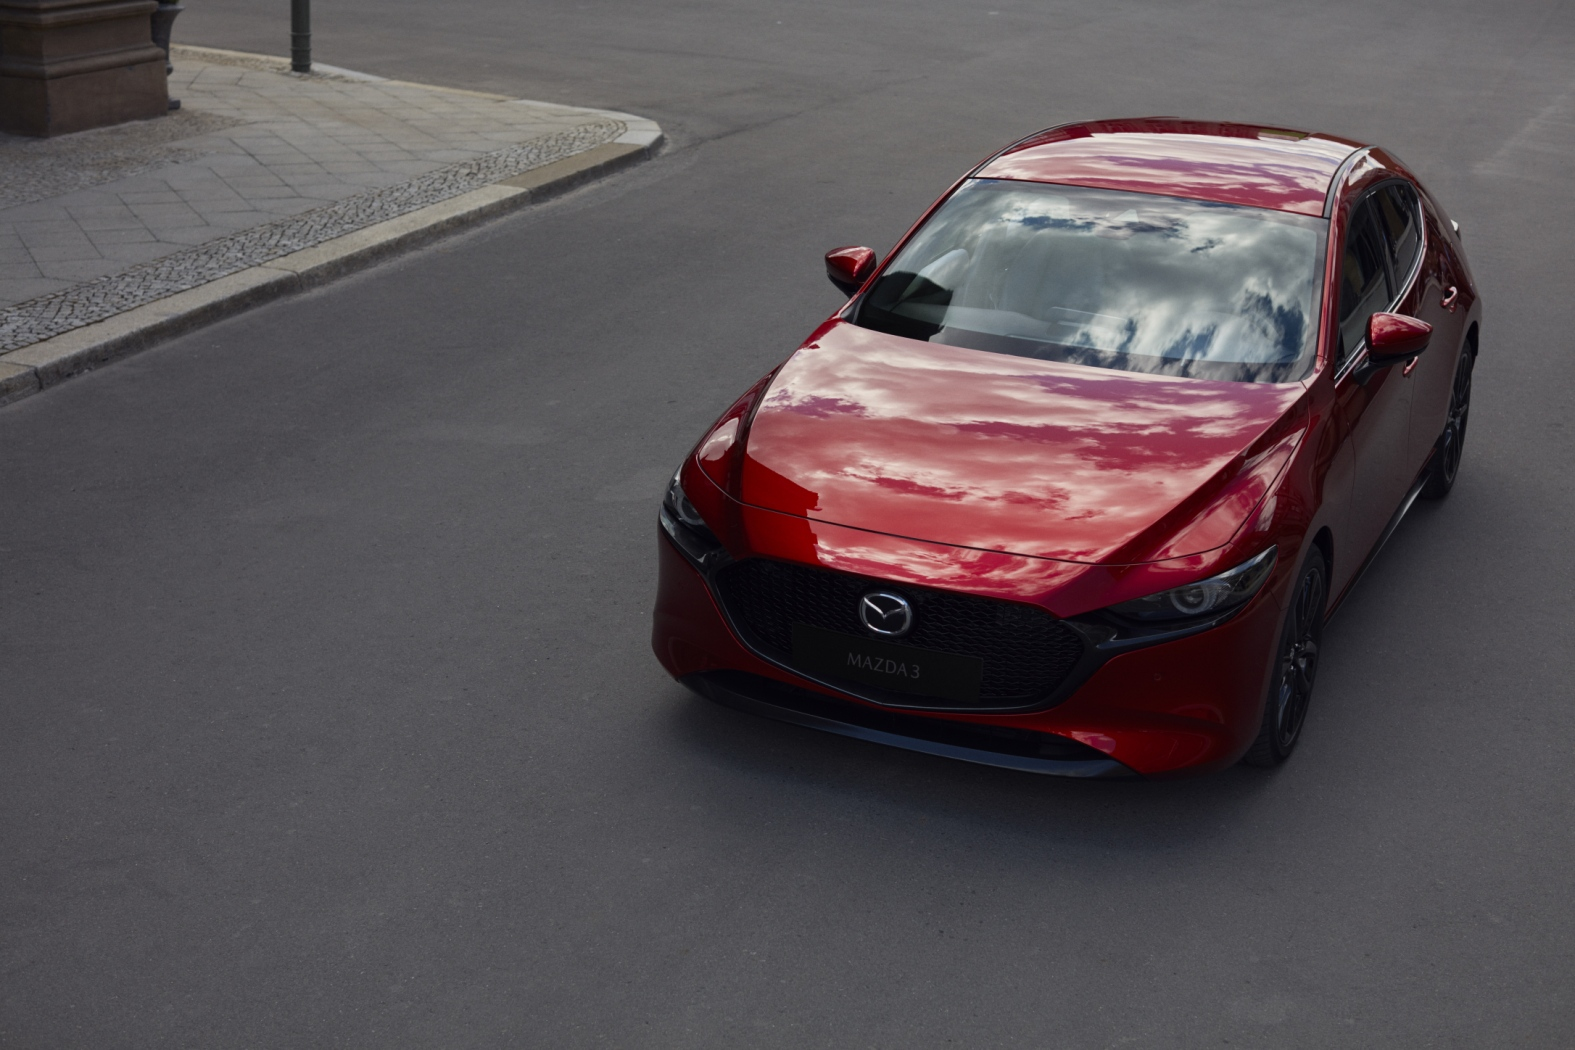 01_all-new-mazda3_5hb_ext_5__1575x1050.jpg